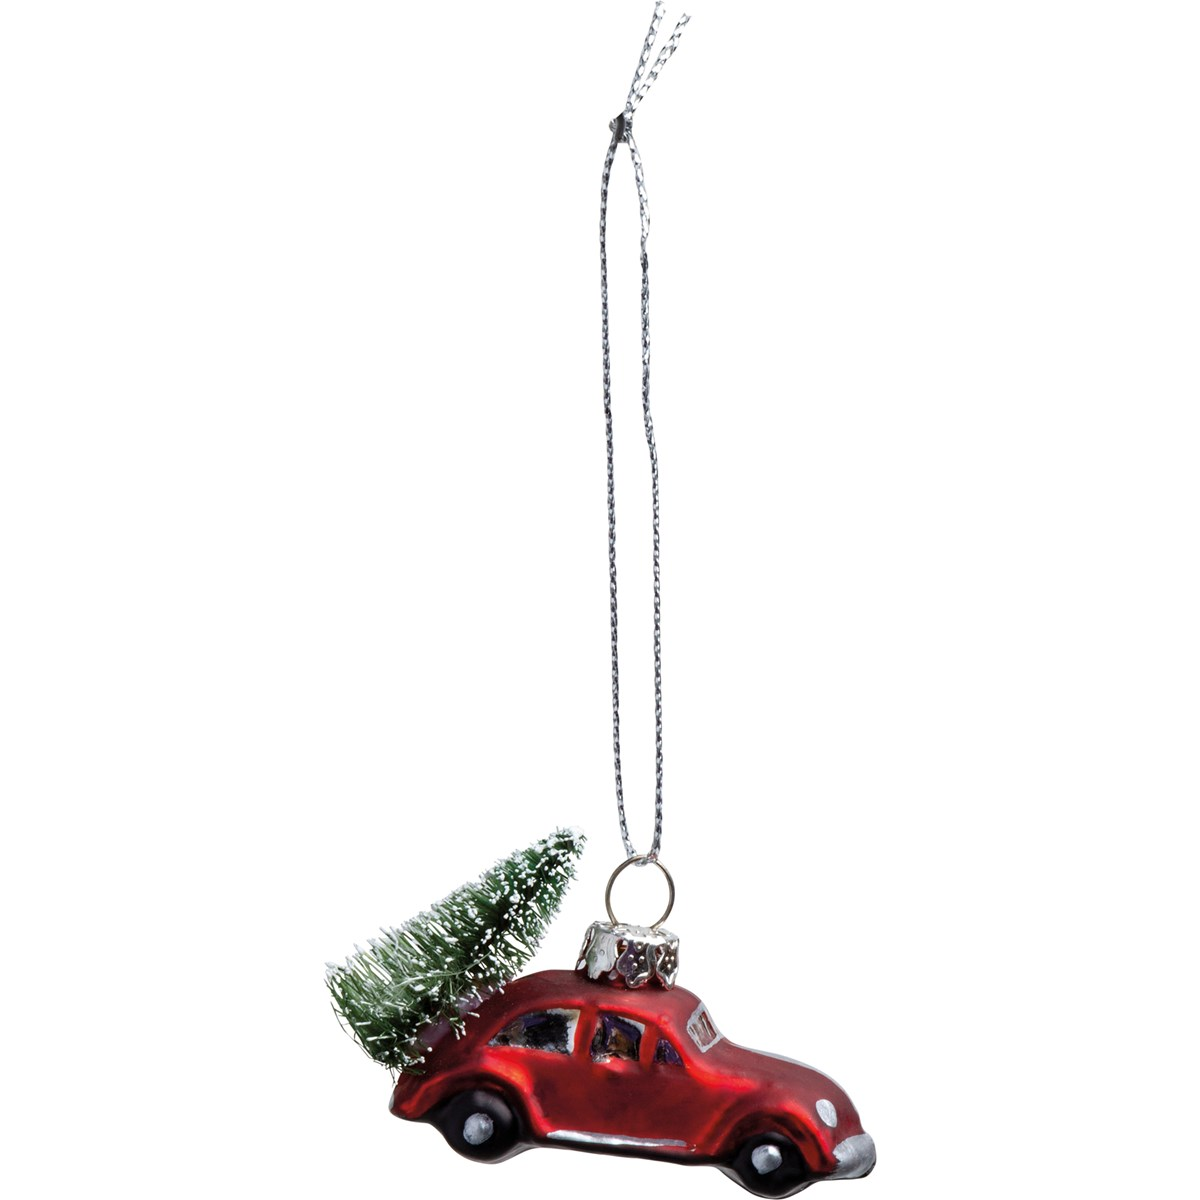 "Glass Ornament - Red Car Tree - 2.75"" x 1.75"" x 1"" - Glass, Metal, Bristle"